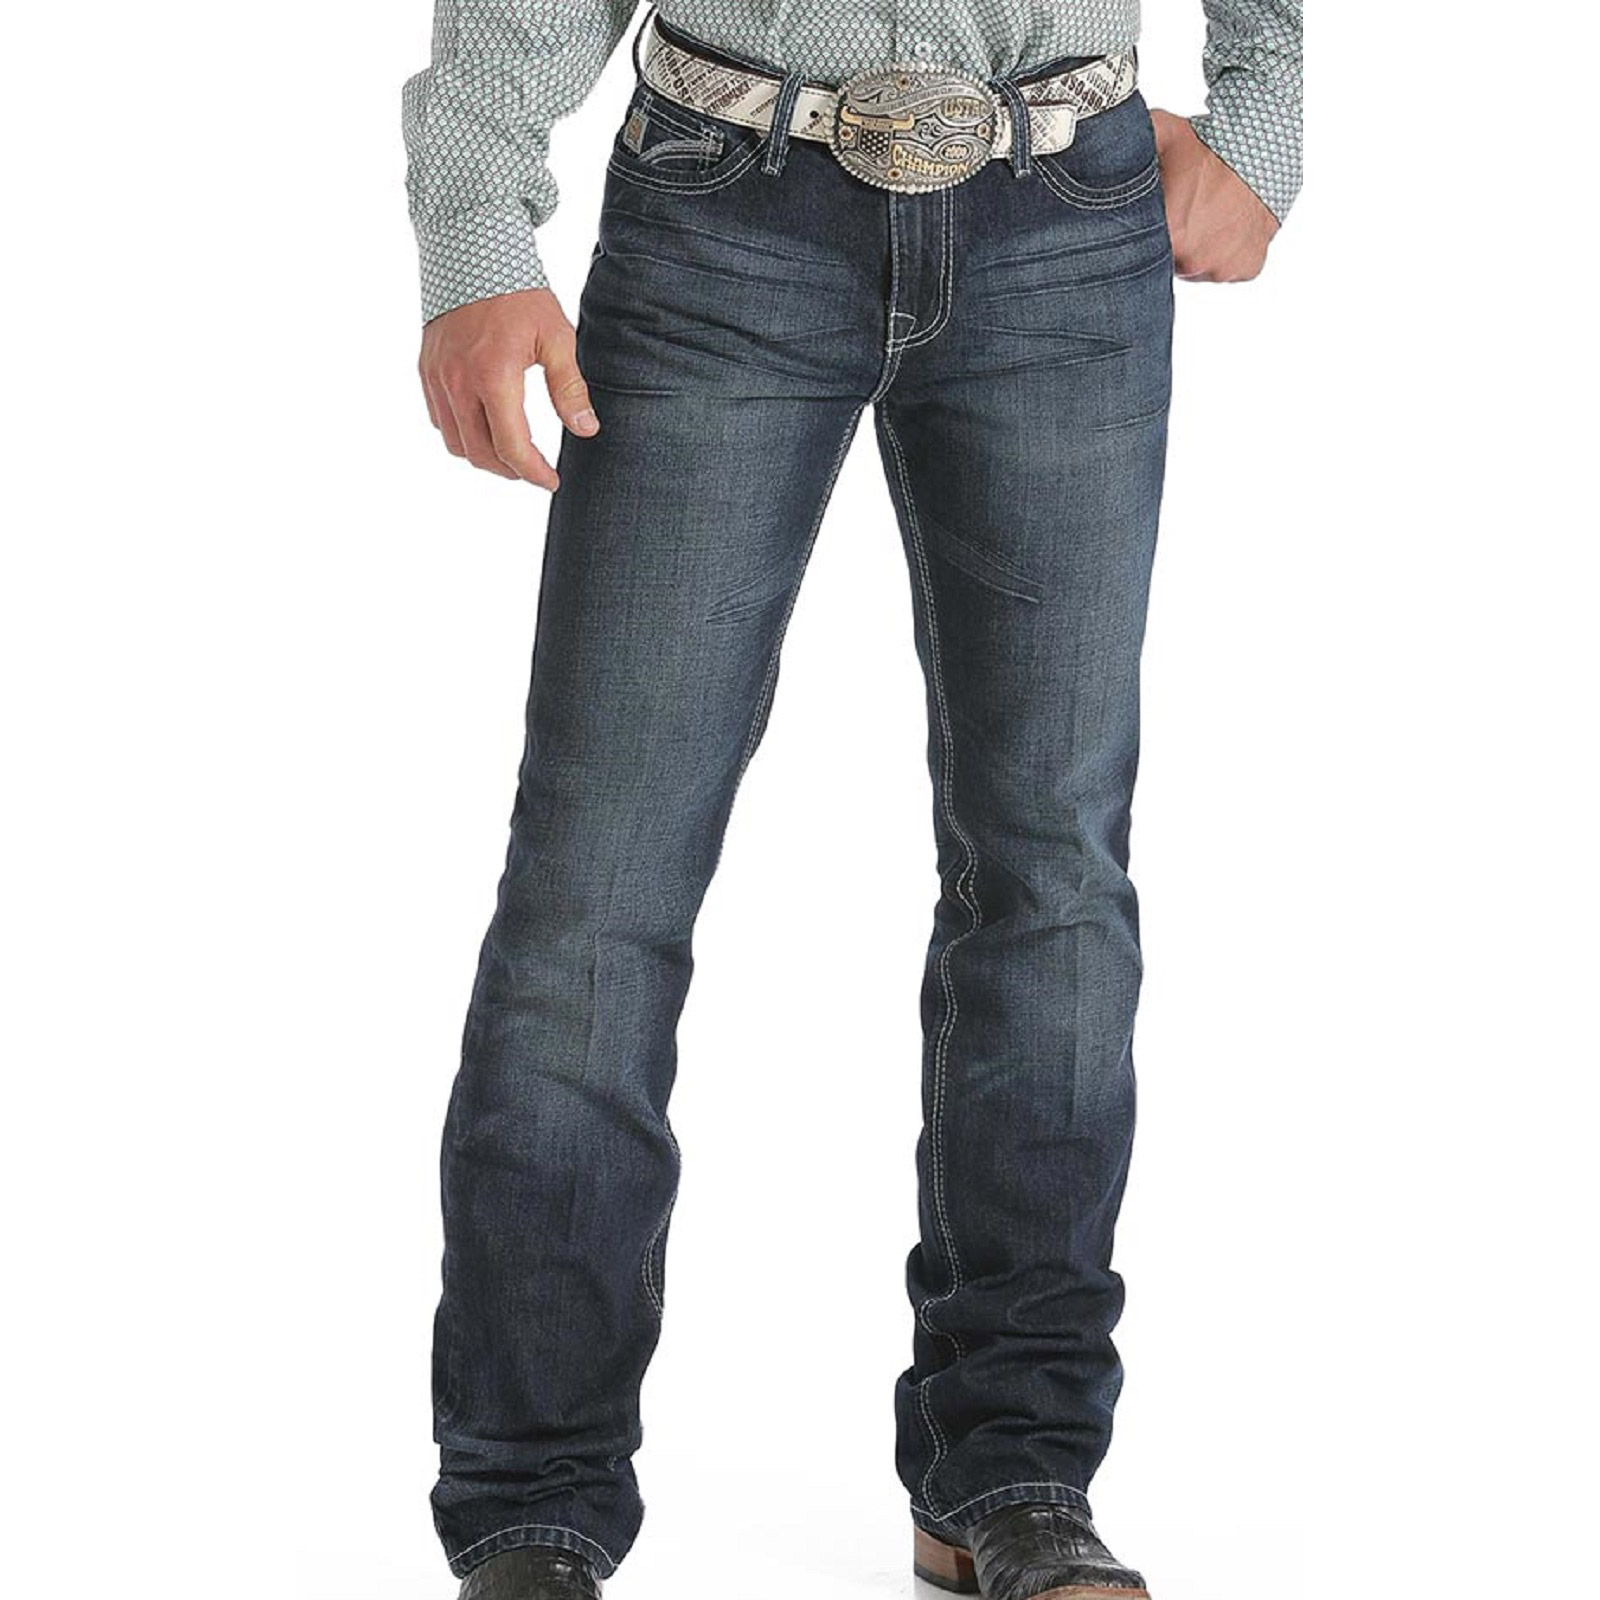 Shop eBay for great deals on Calvin Klein Stonewashed Jeans for Men. You'll find new or used products in Calvin Klein Stonewashed Jeans for Men on eBay. Free shipping on selected items.